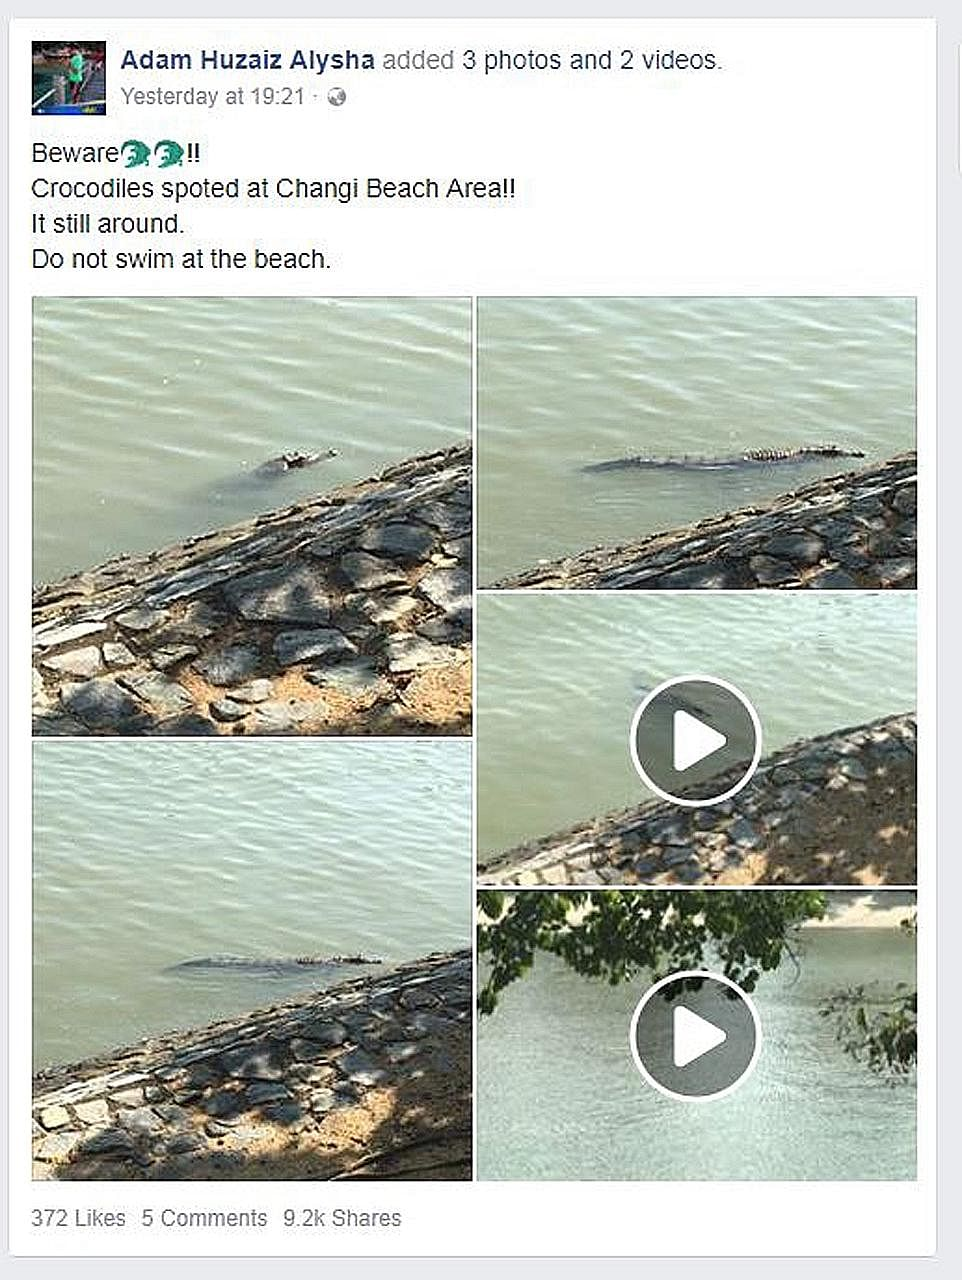 Mr Yusaini Abdul Rahim, an ICA officer who works at Changi Ferry Point Terminal, spotted the crocodile twice while he was on patrol. He posted some photos and videos of the reptile on Facebook to warn others to be careful while in the area.